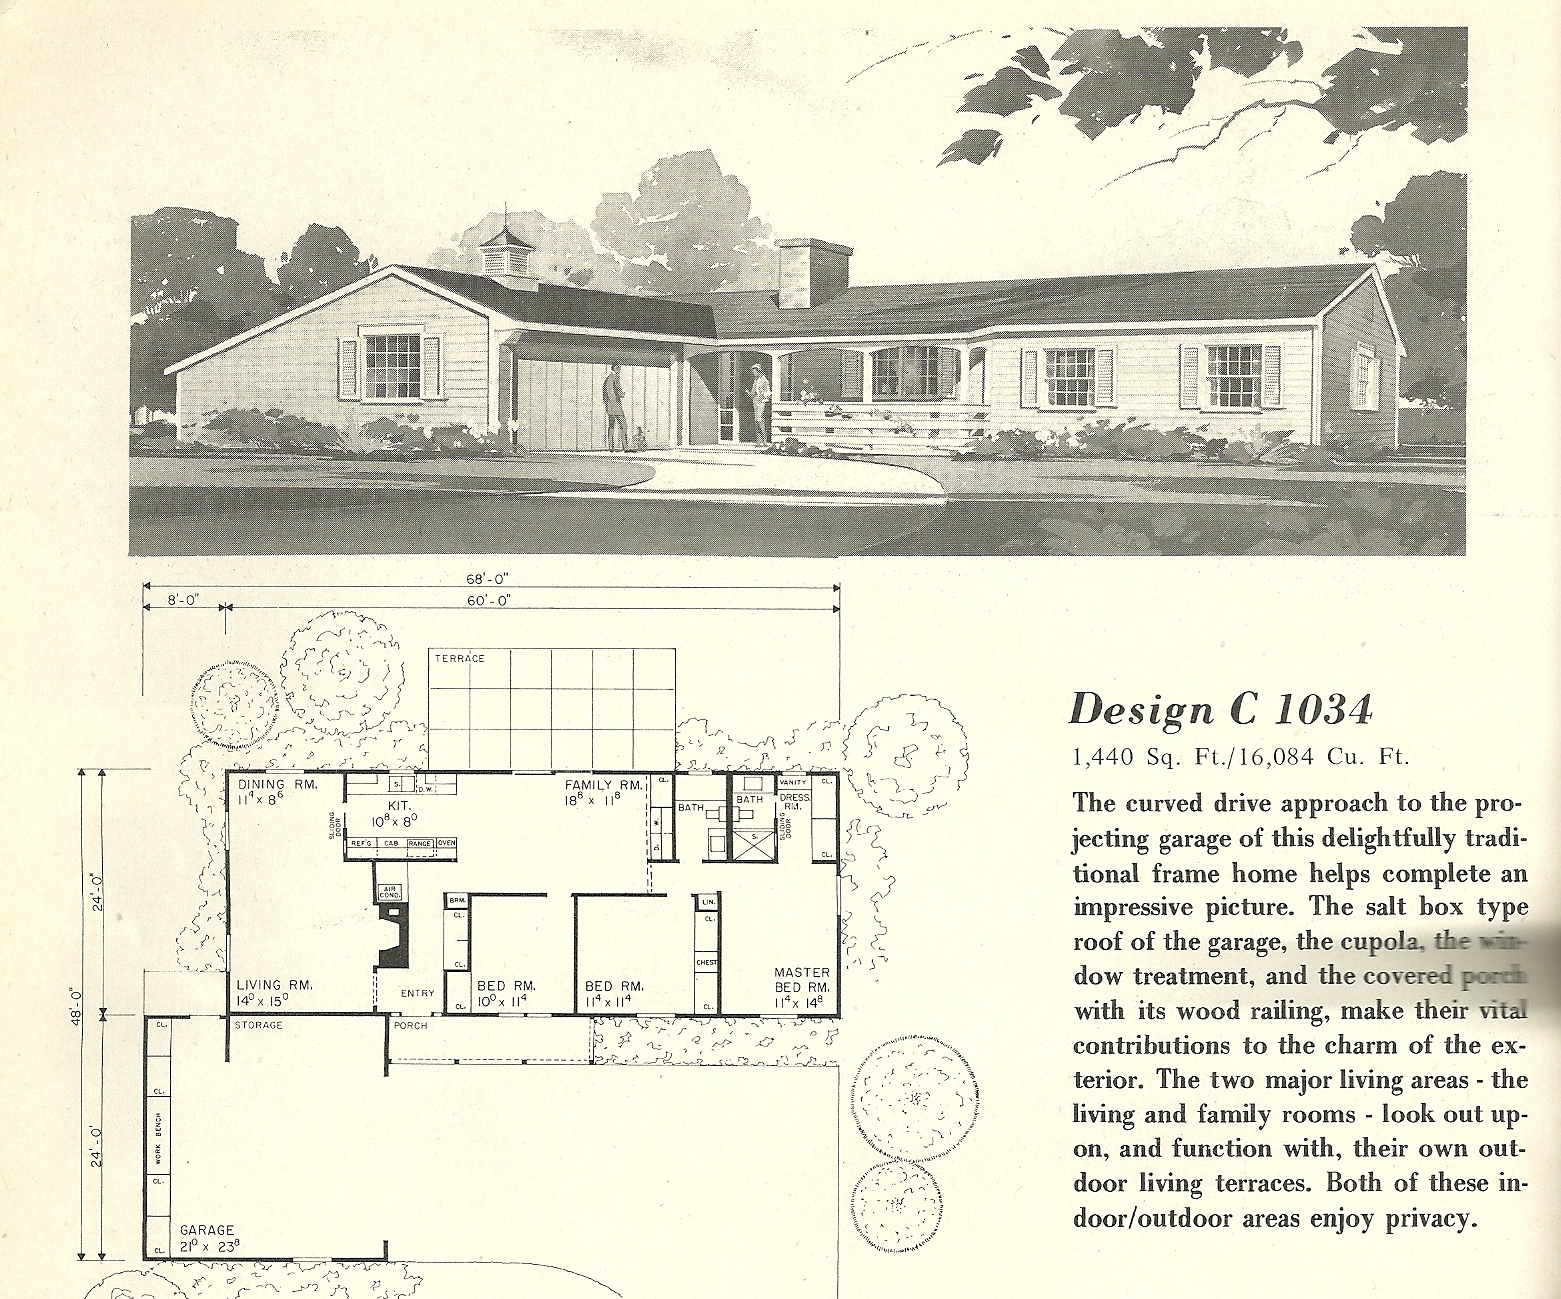 Vintage house plans 1034 antique alter ego for Vintage home plans